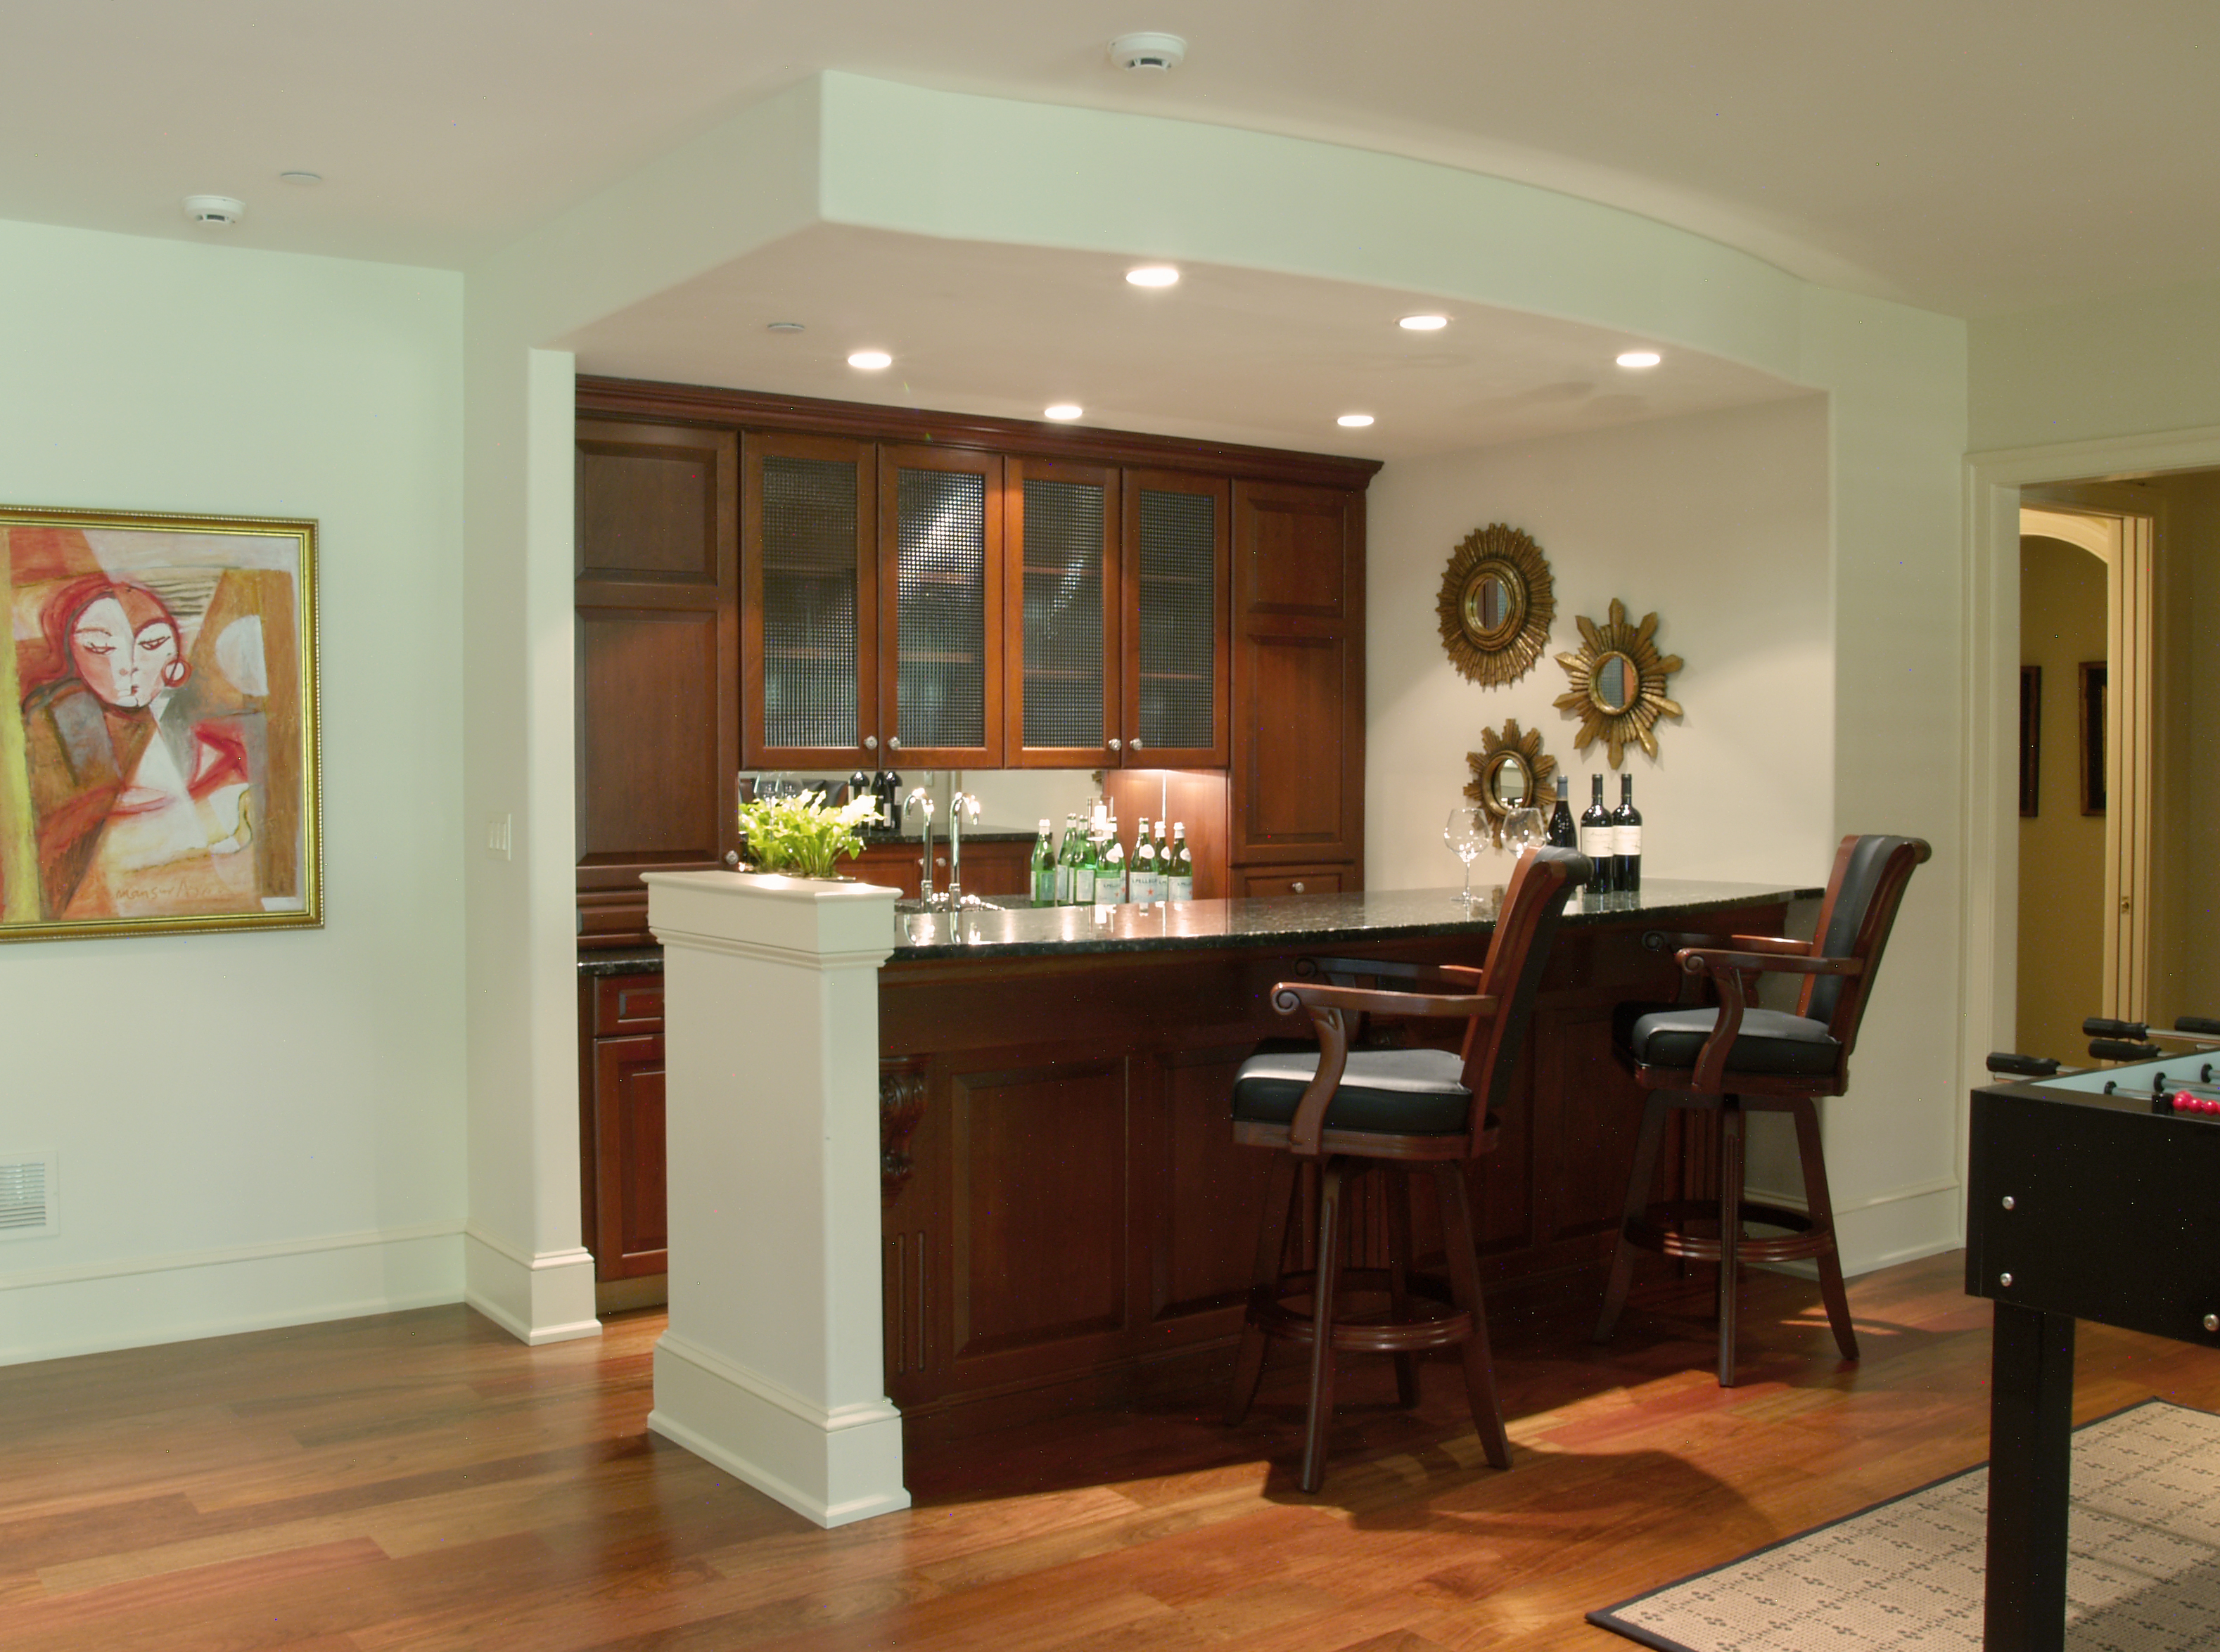 Image of: wet bar designs for basements